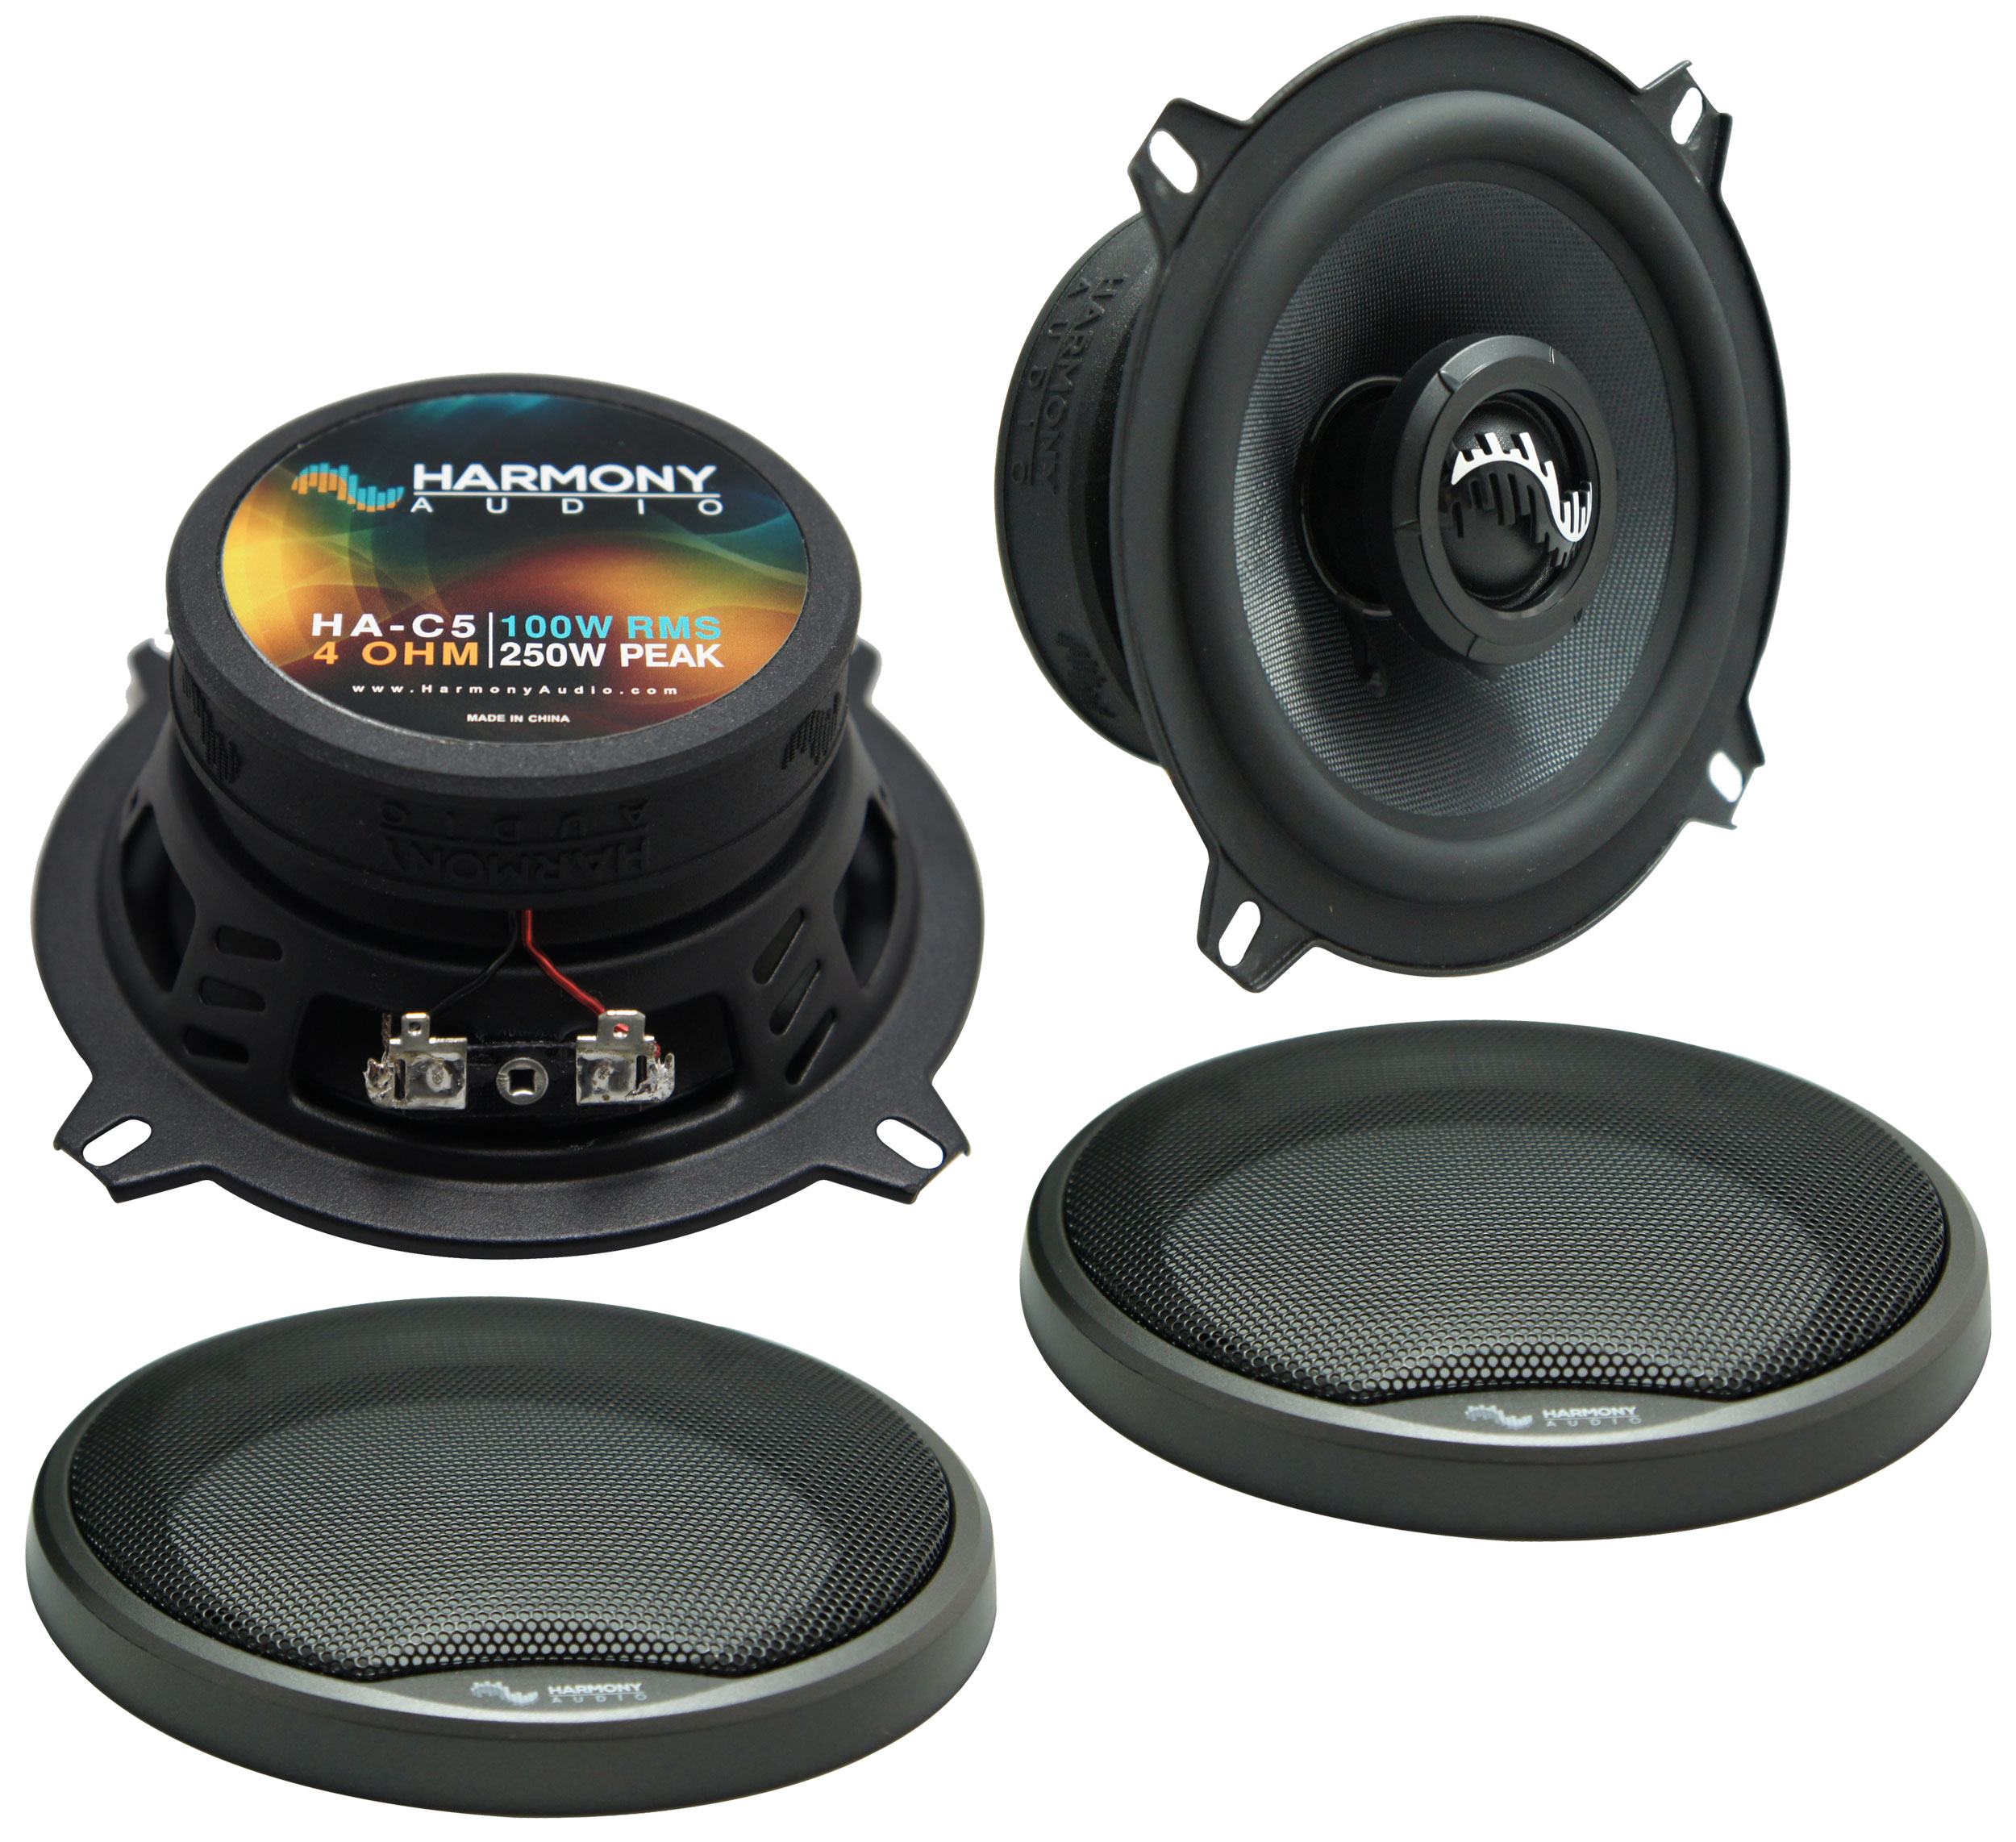 Fits Jeep Cherokee 1988-1996 Front Door Replacement Harmony HA-C5 Premium Speakers New